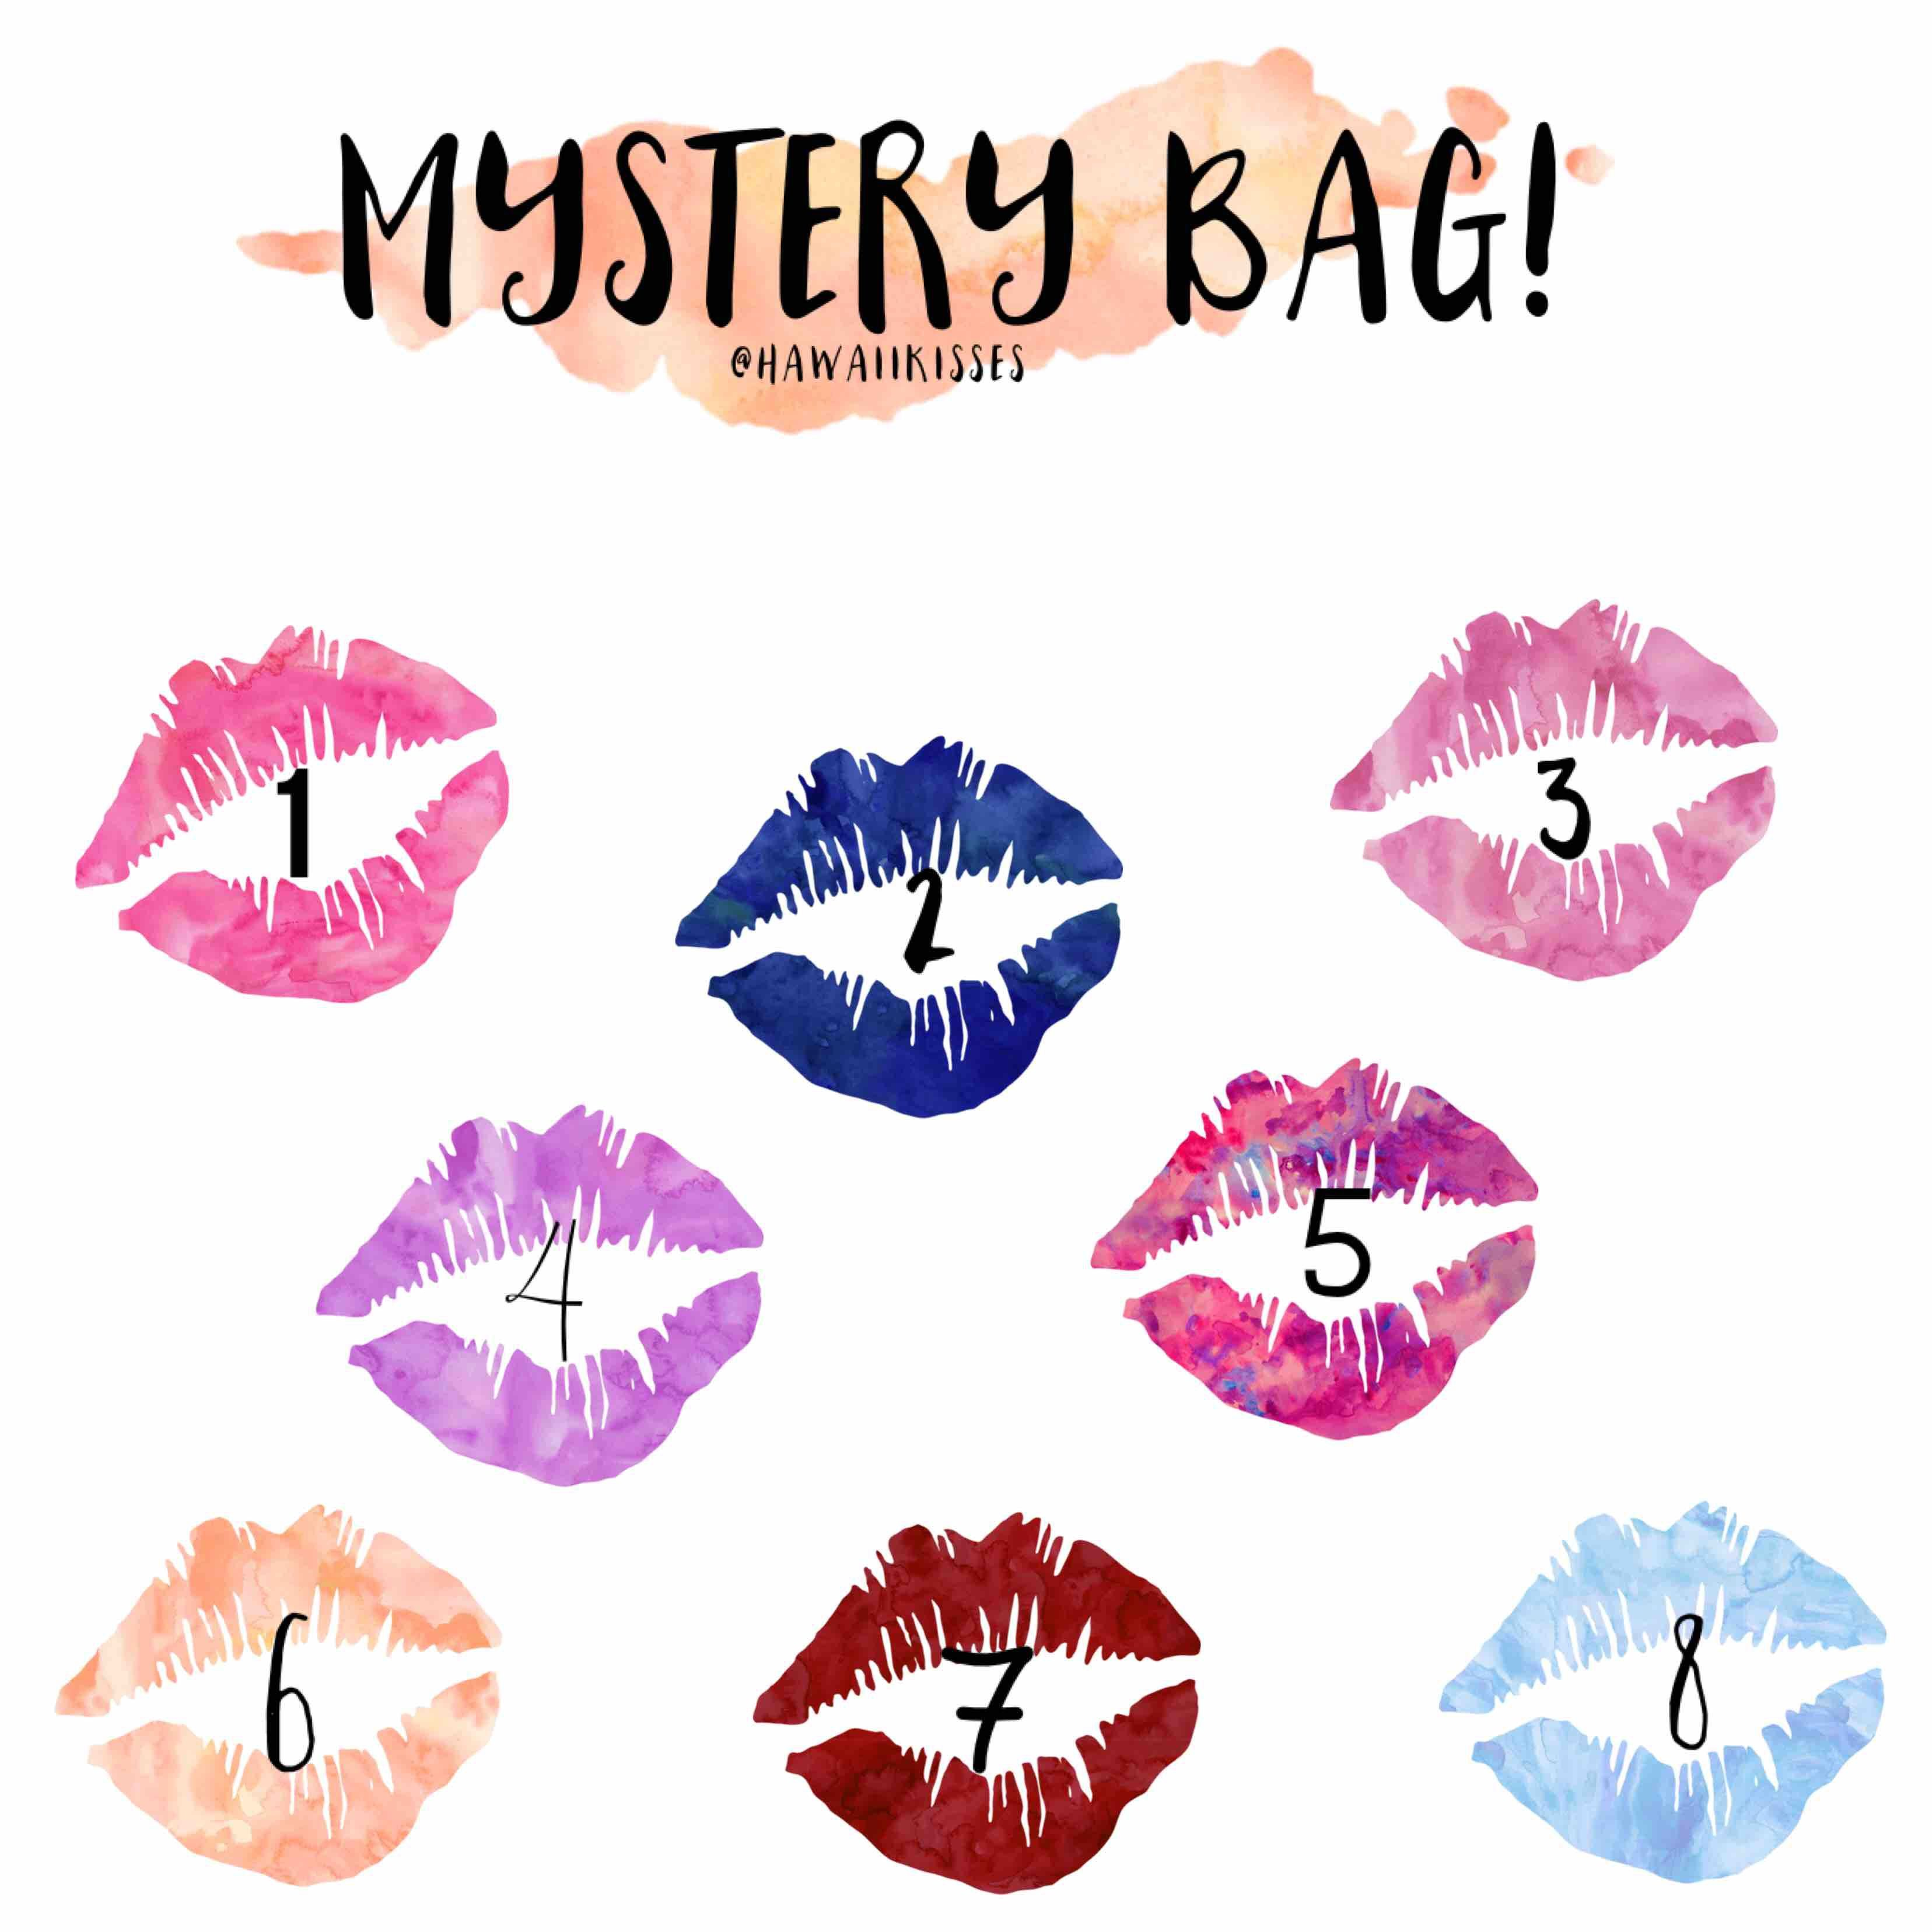 e730820ede Mystery Bag Sale!  40 each Gloss   Color! 2 have something extra  Www.facebook.com groups hawaiikisses  lipsense  mystery  senegence  makeup   sale  beauty   ...